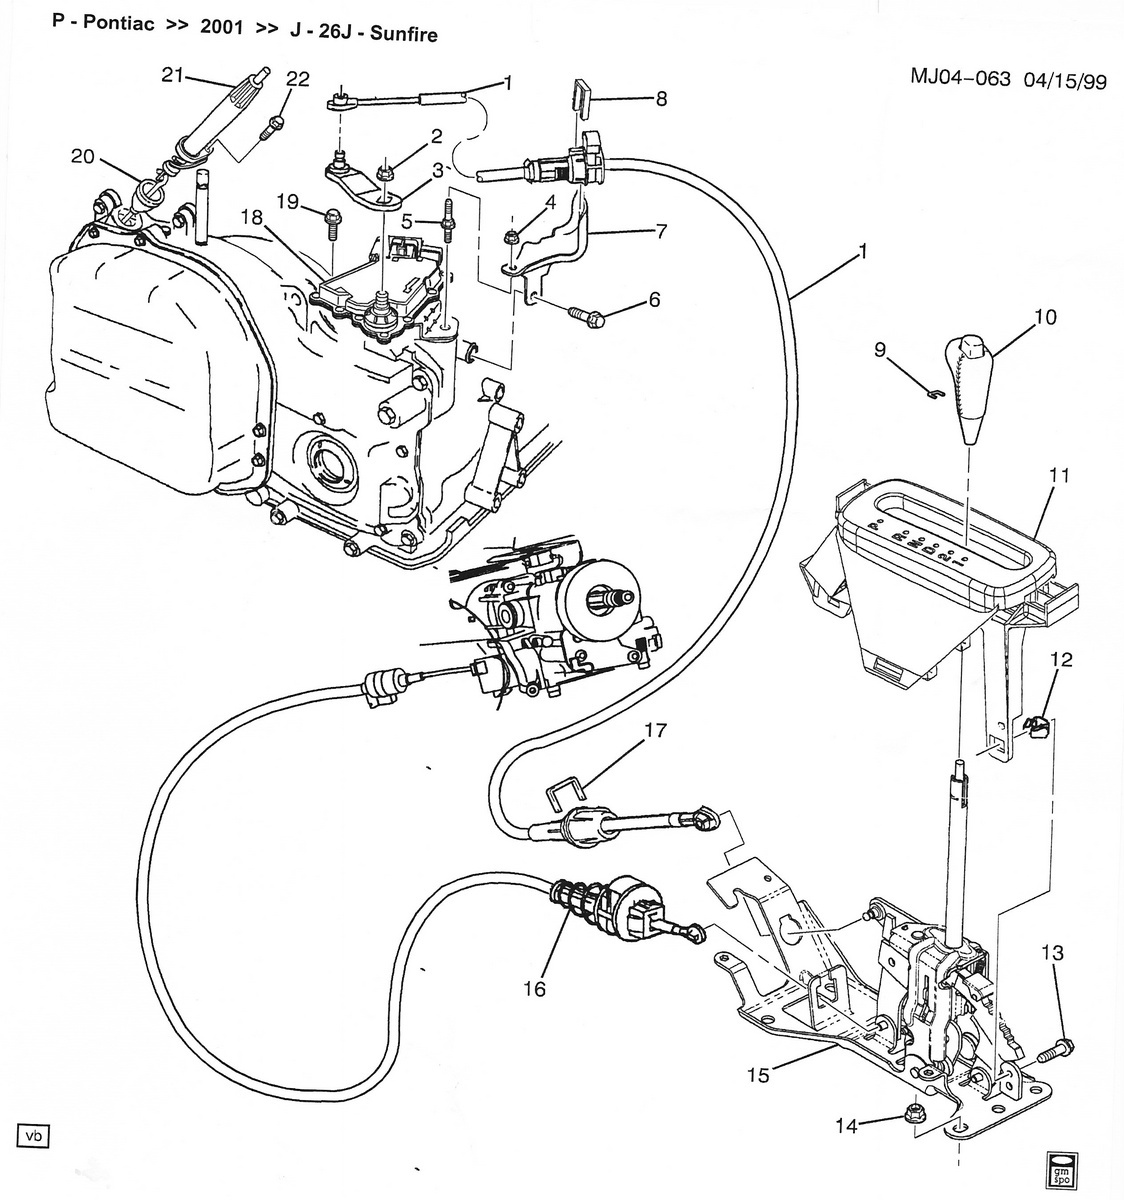 Chevy Cavalier Fuel Filter Location Free Engine Image For User Manual Download